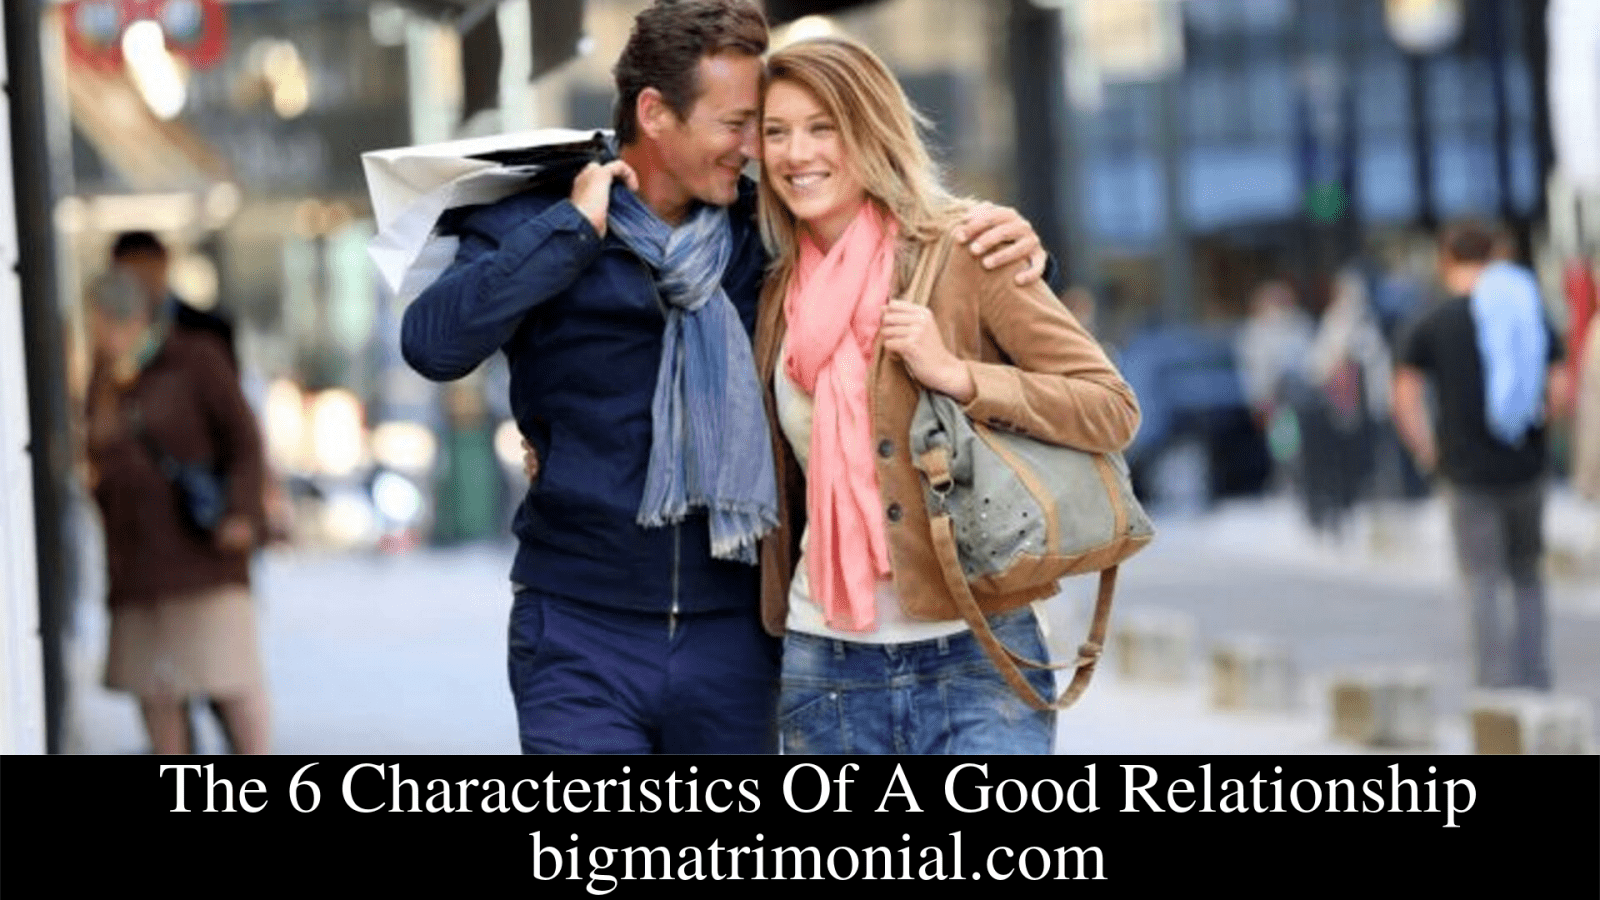 The 6 Characteristics Of A Good Relationship